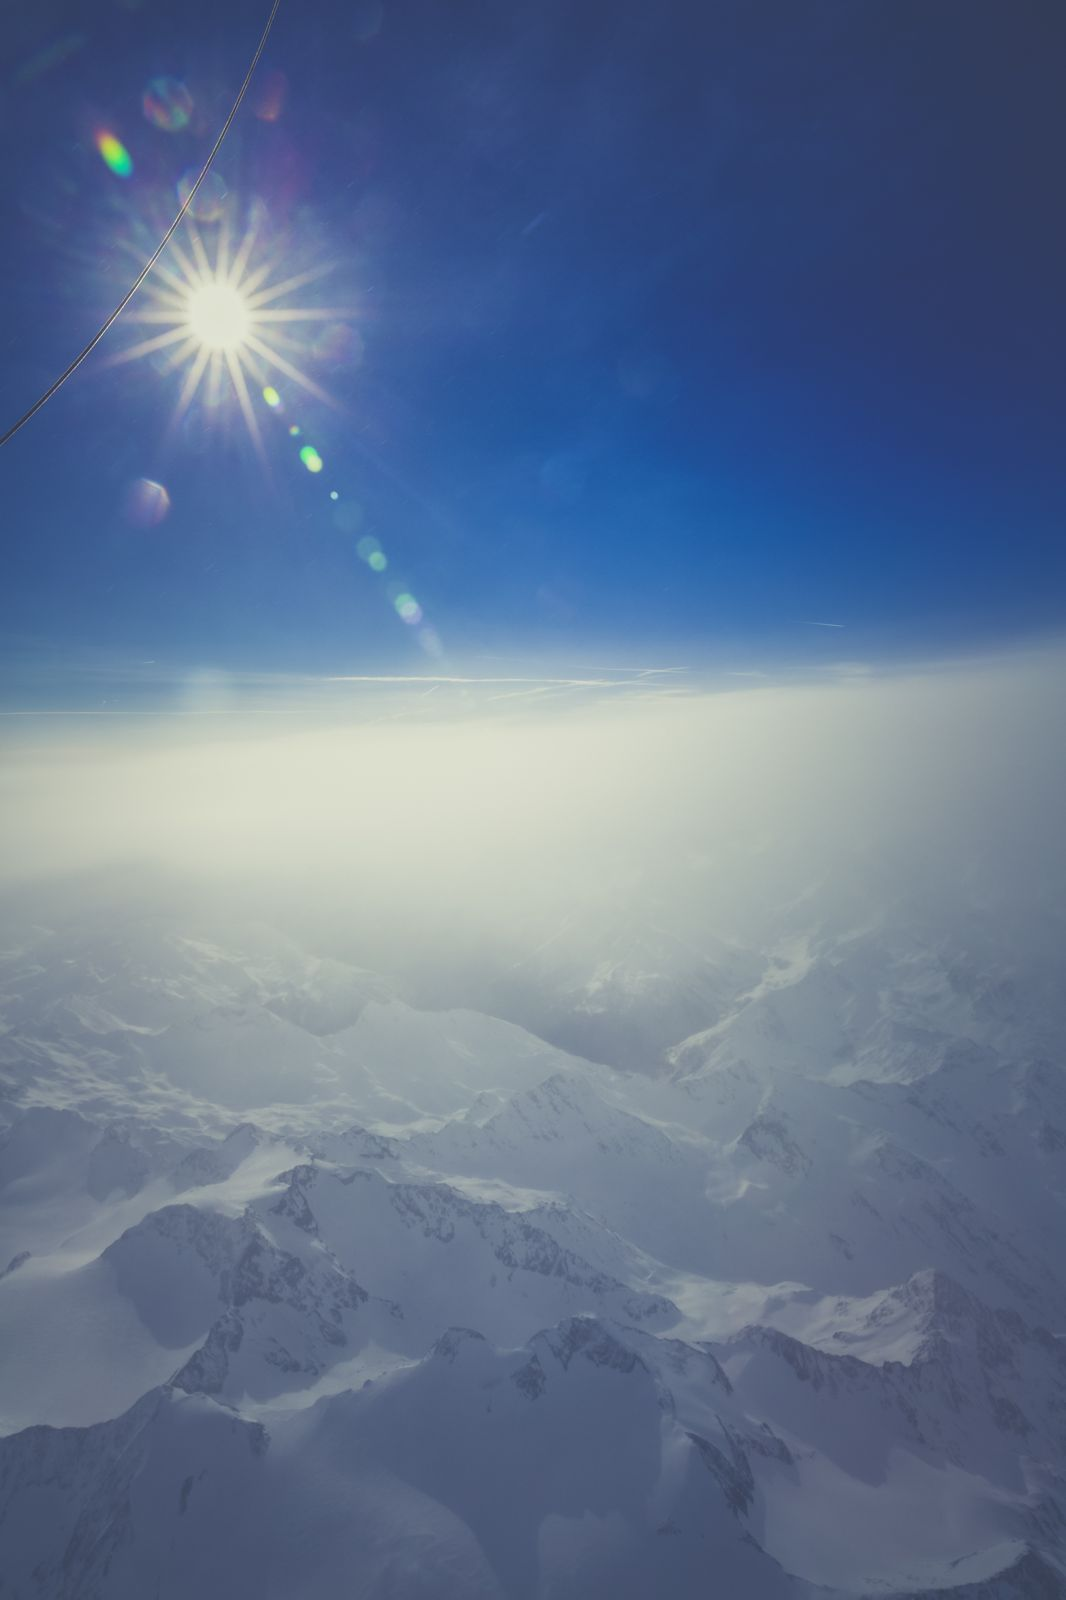 Nature Sky Landscape Mountains Snow Winter Sun Fog Aerial